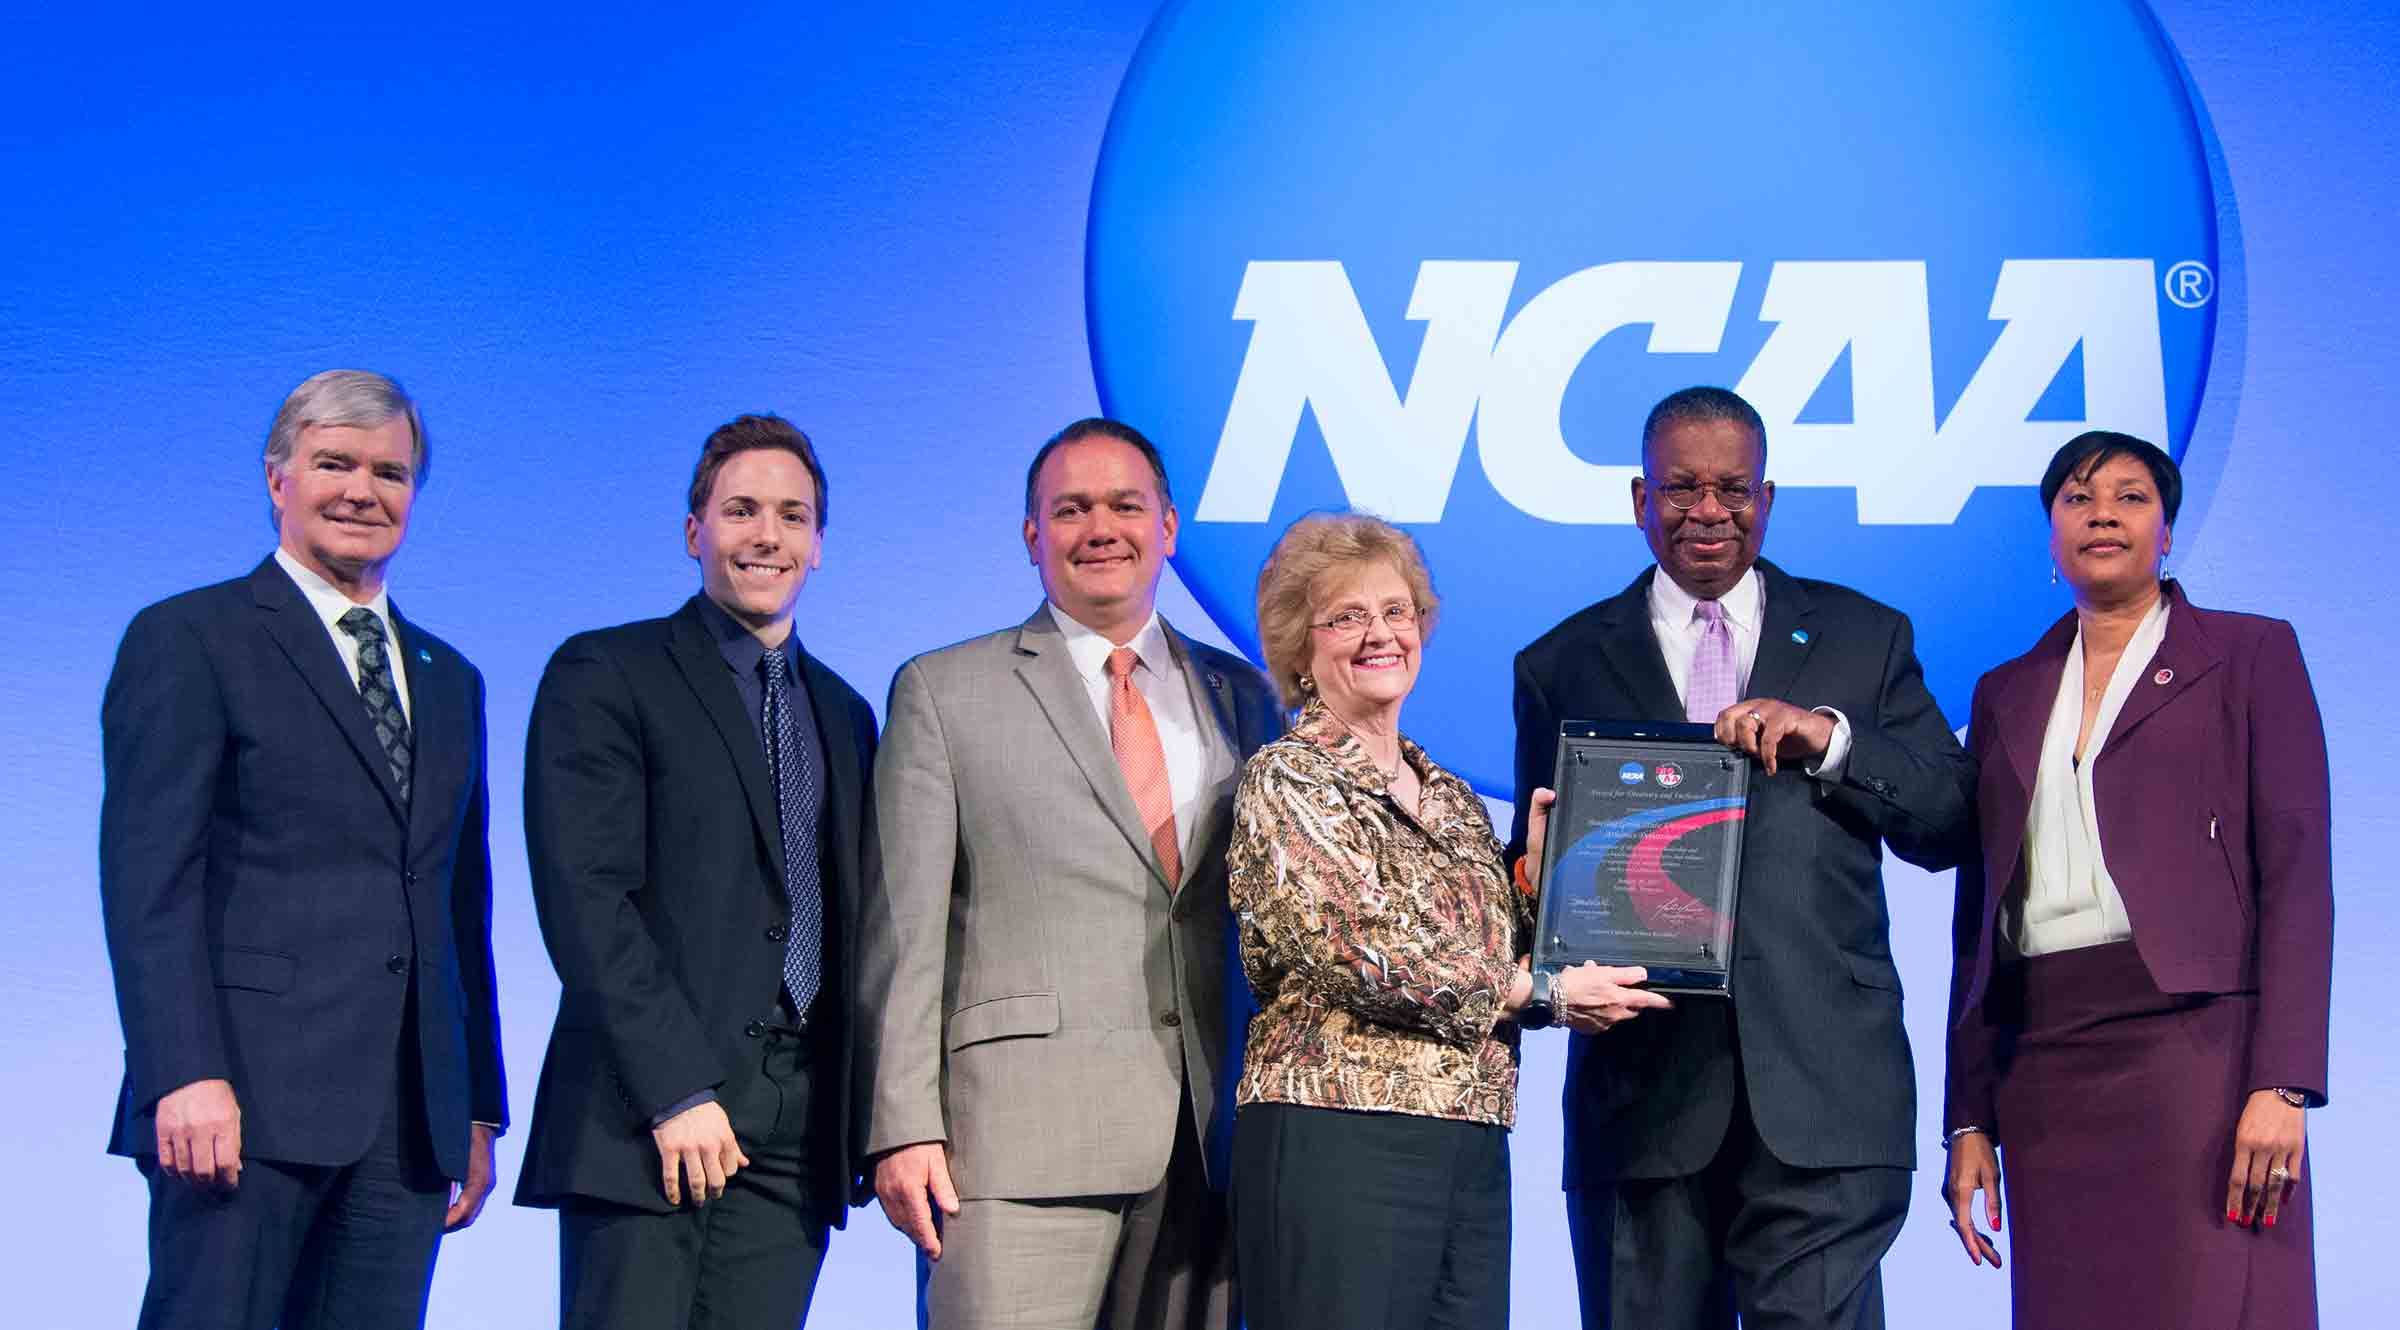 2017 Award for Diversity and Inclusion presented by the NCAA in partnership with the Minority Opportunities Athletic Association